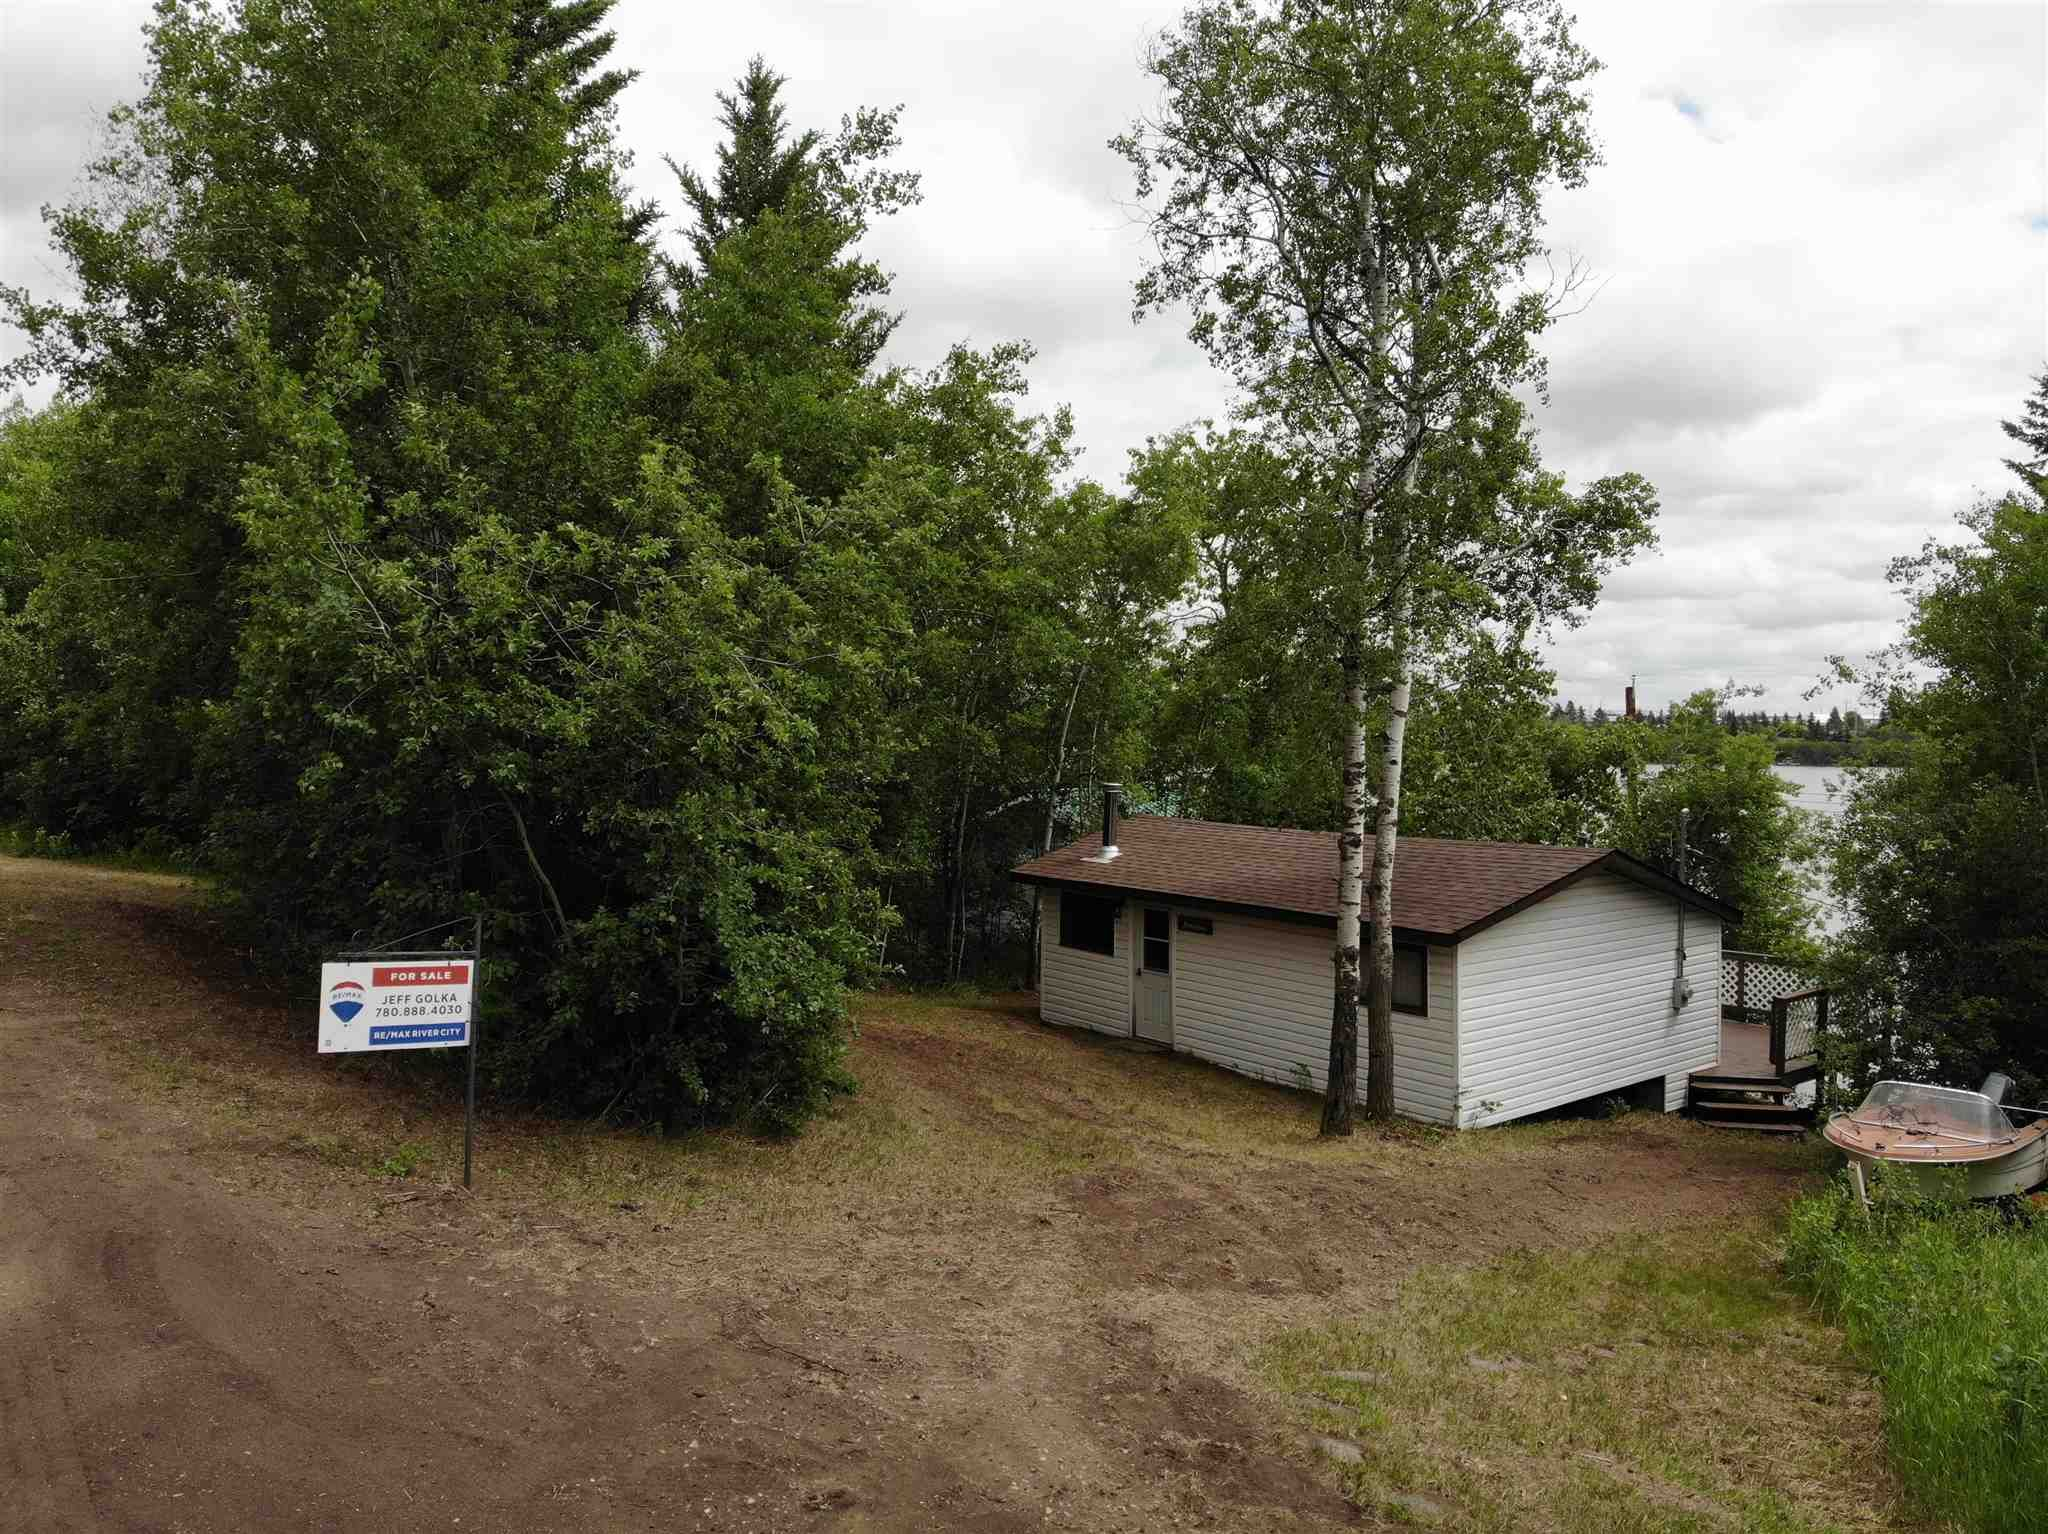 Main Photo: 14 Lakeview Drive: Hardisty House for sale : MLS®# E4250111